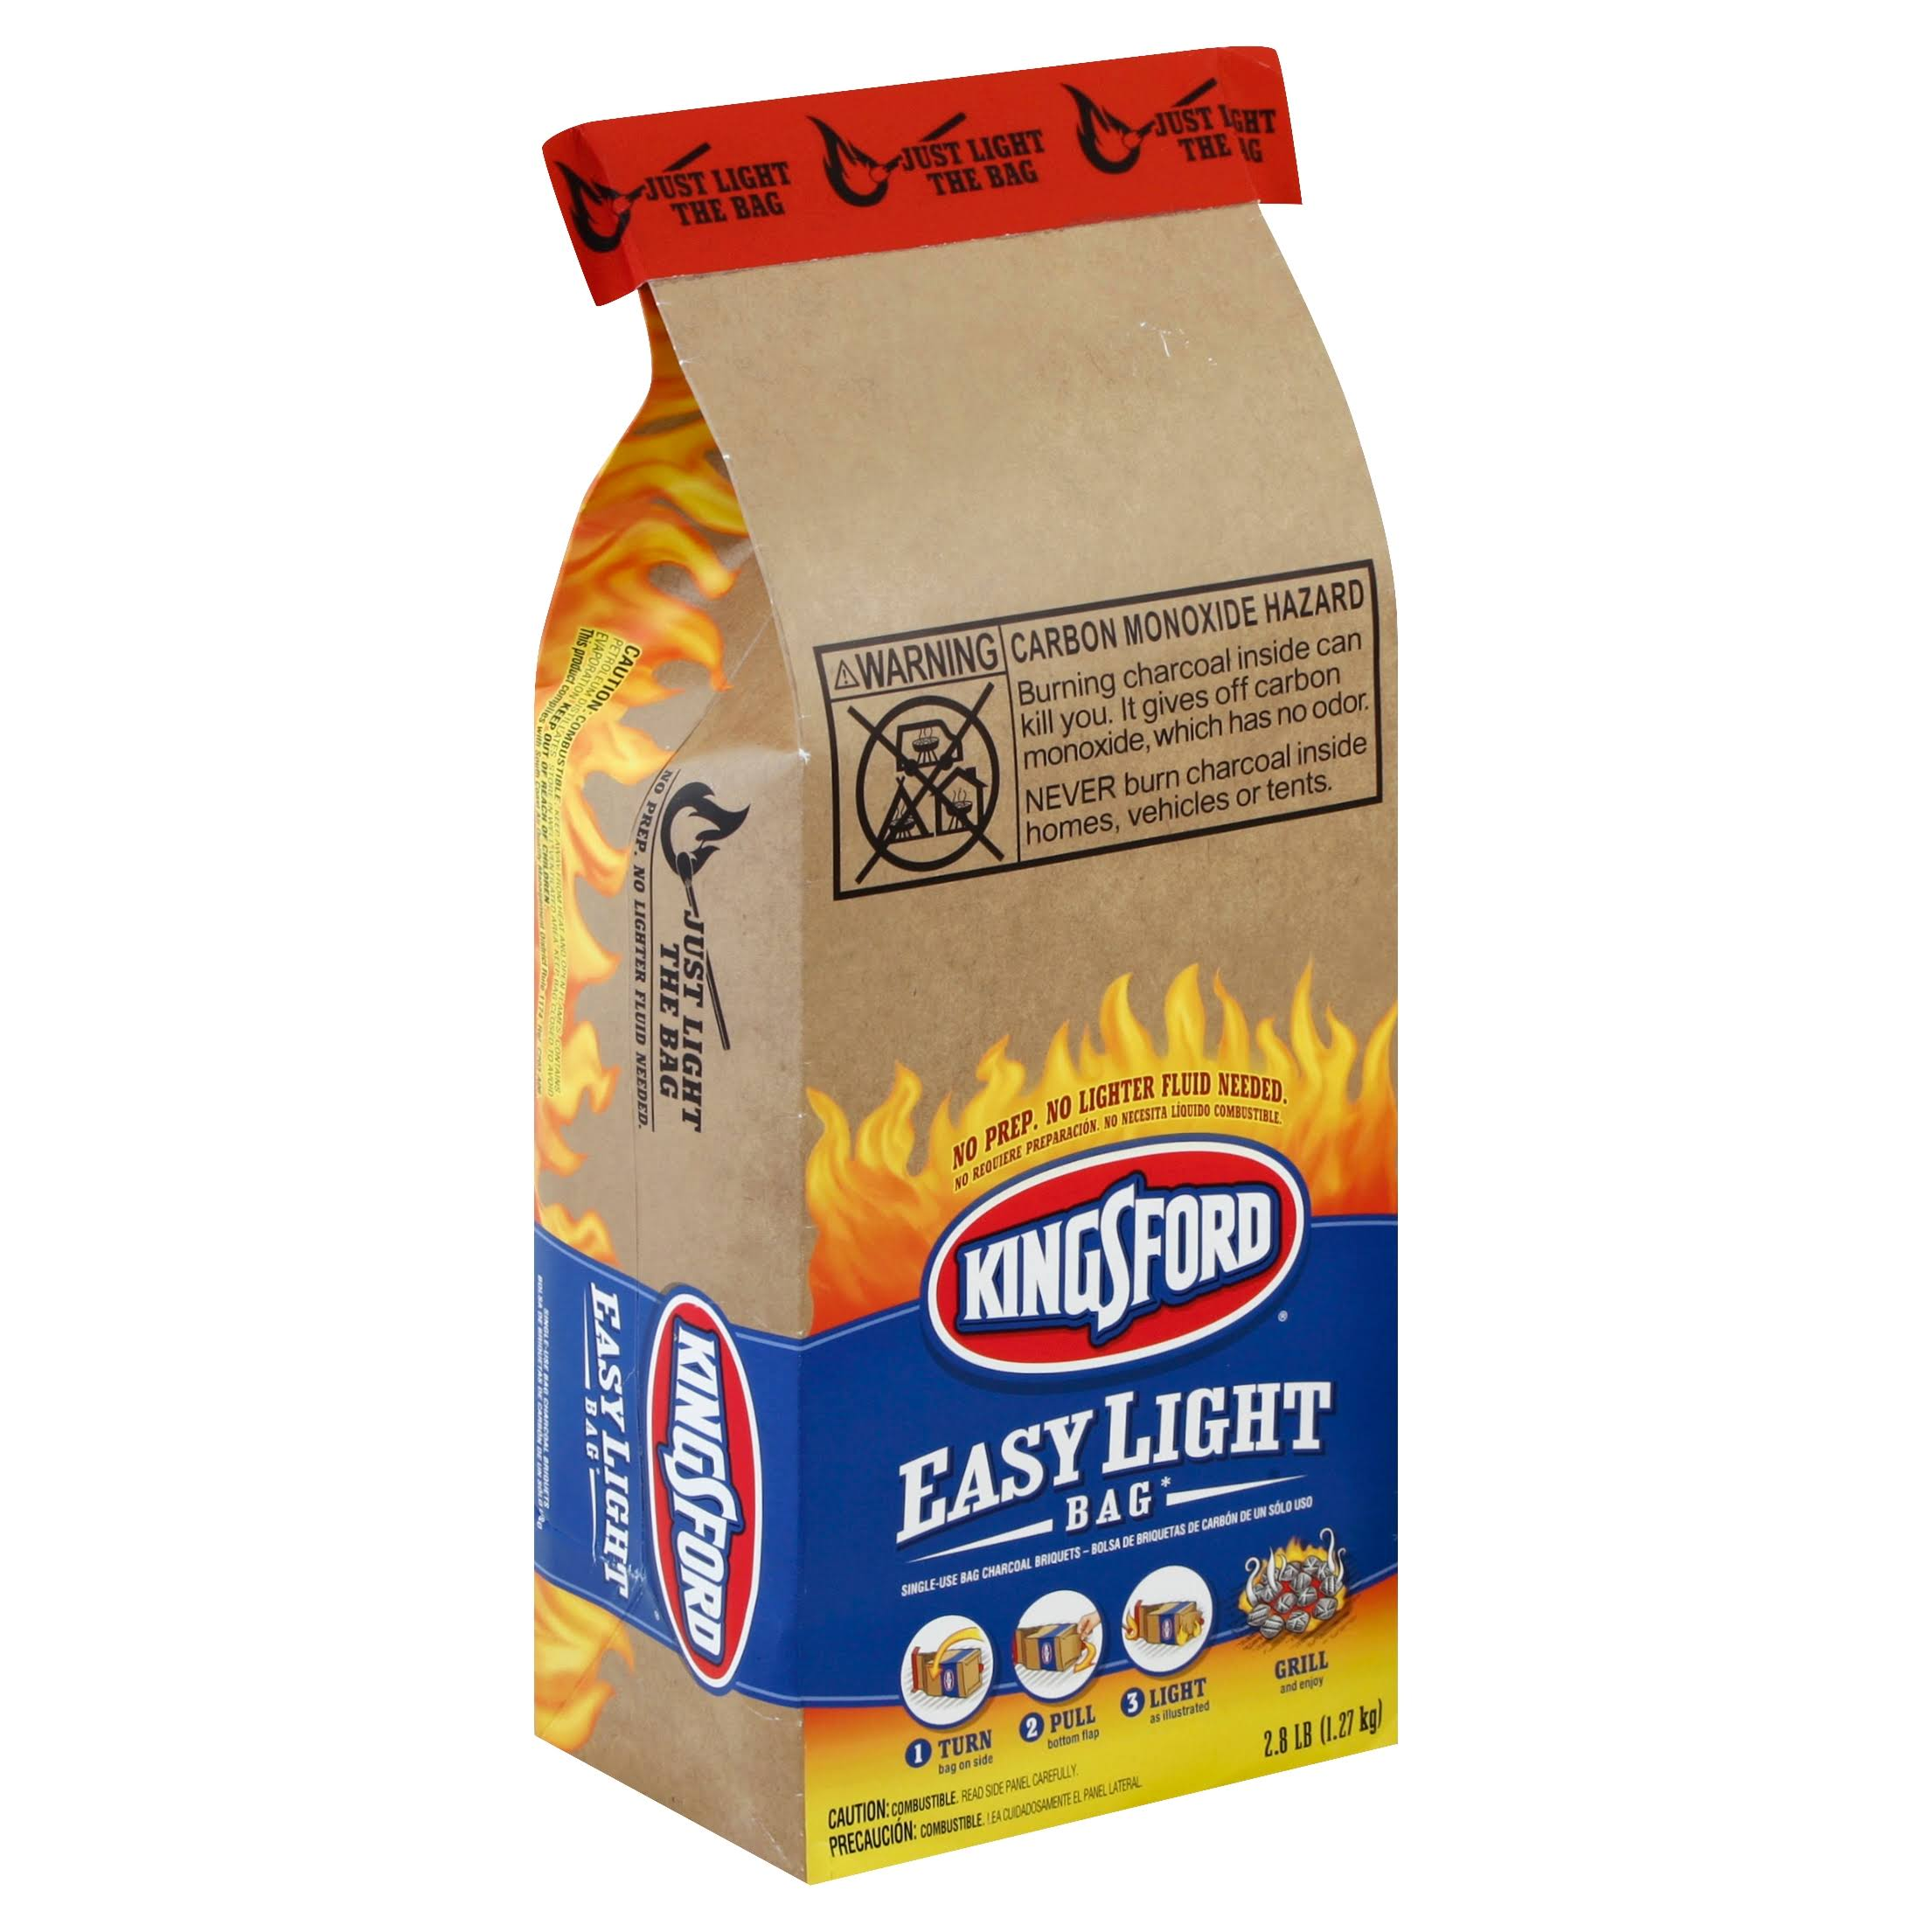 Kingsford Easy Light Bag - 1.27kg